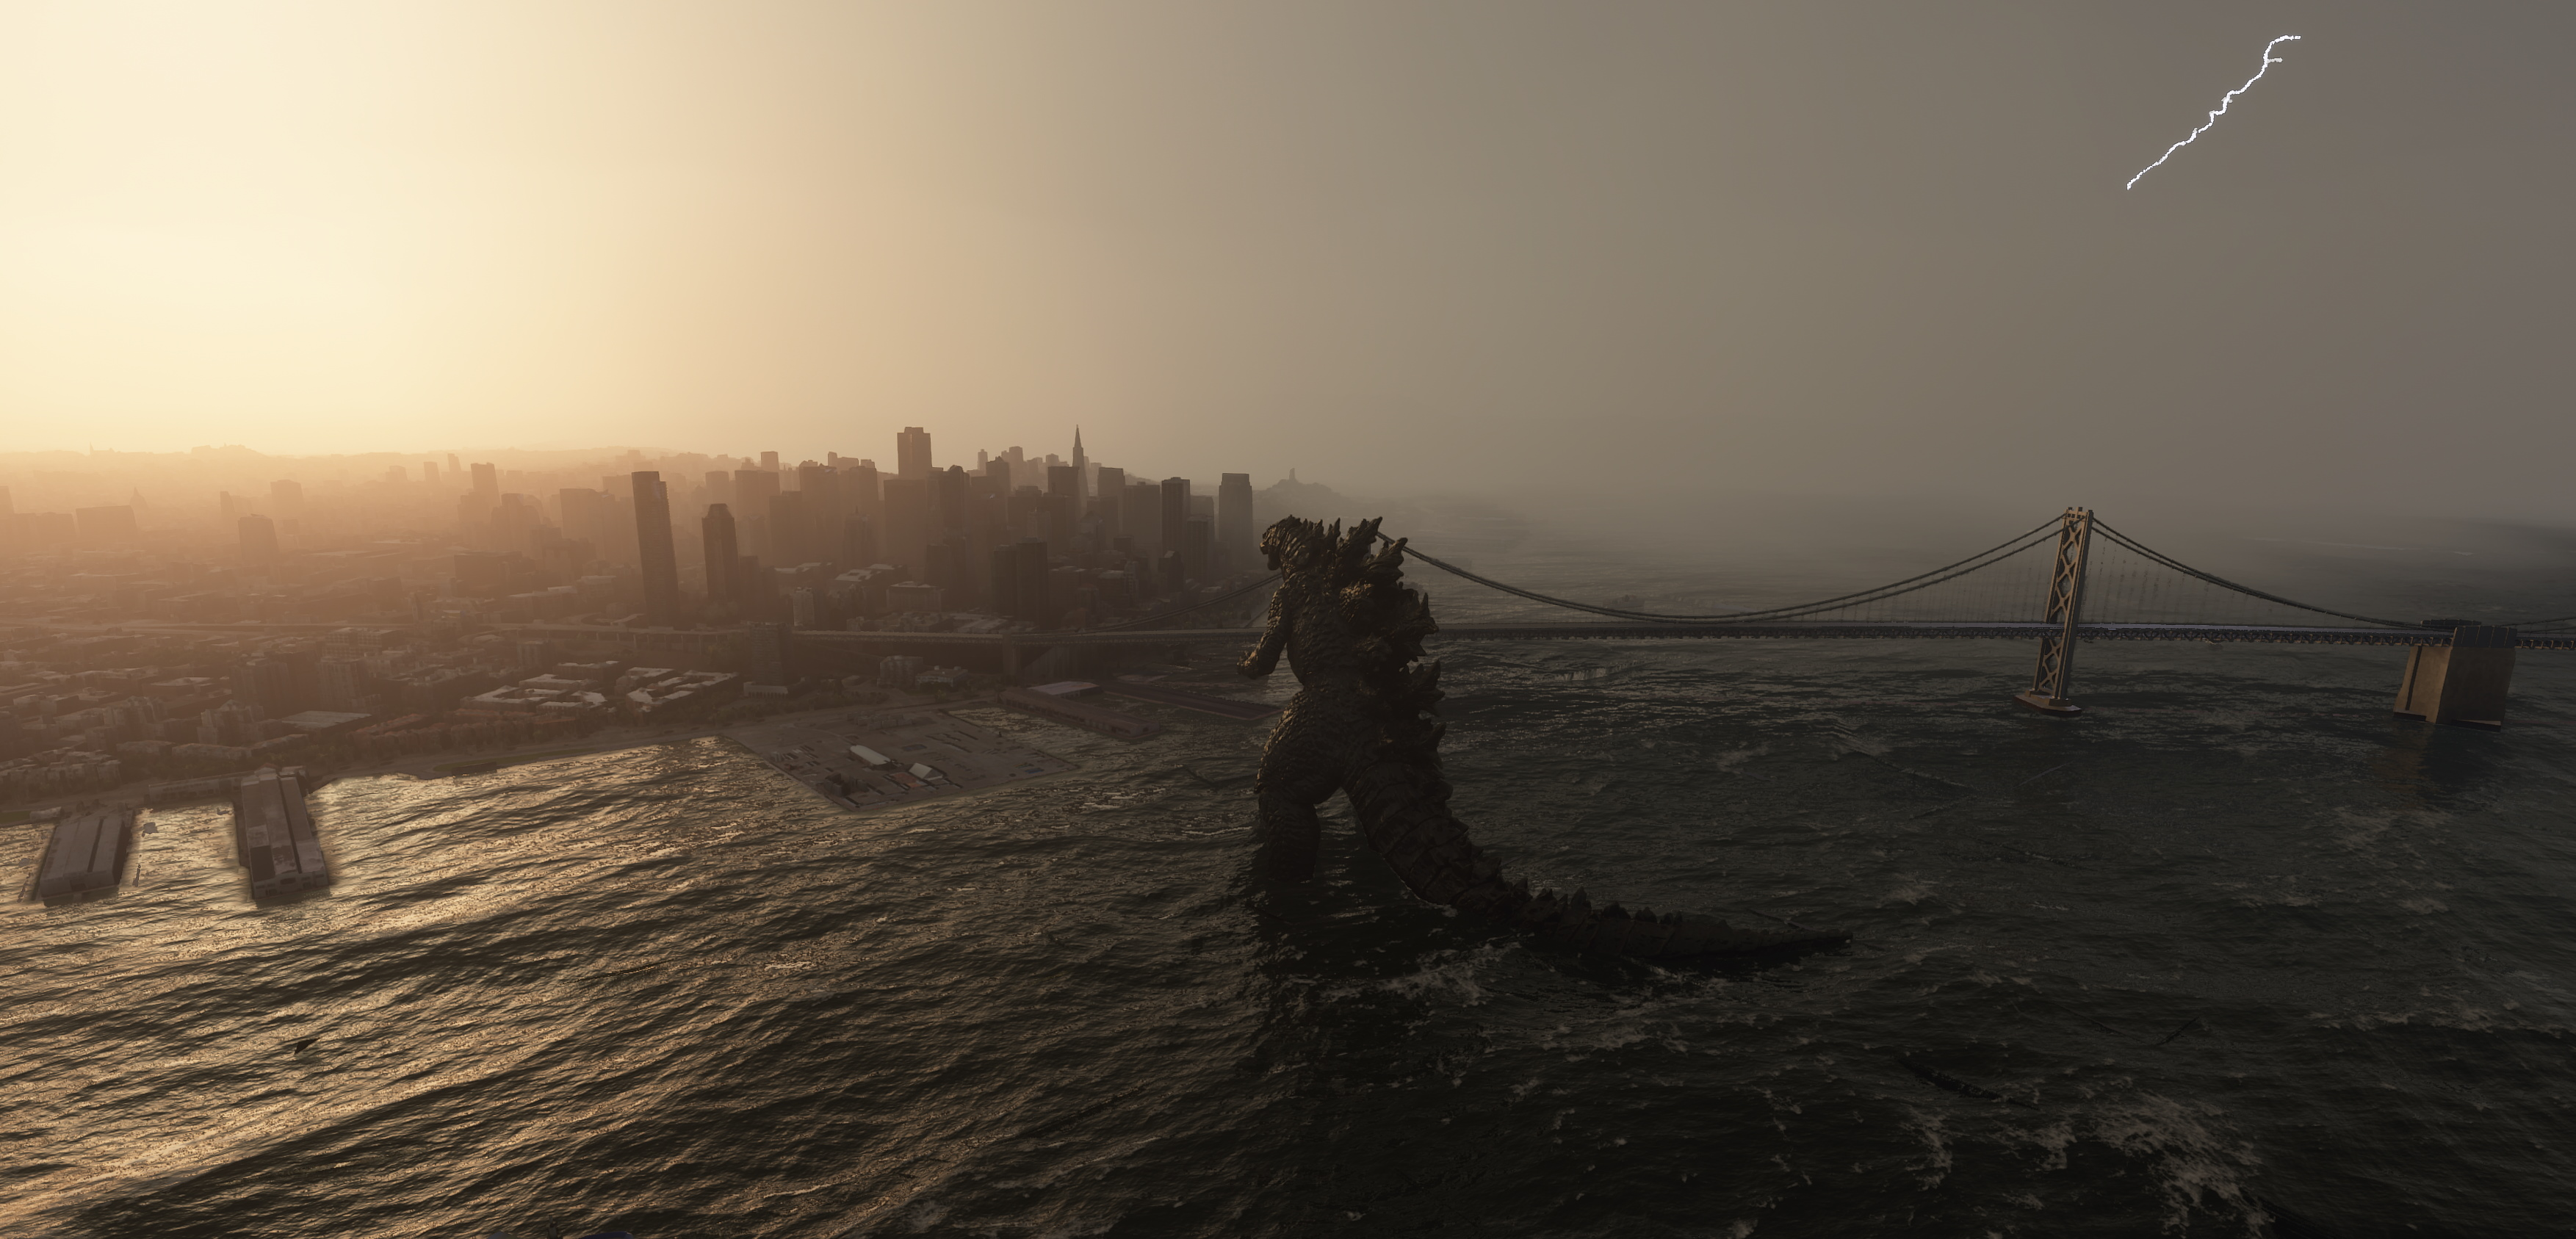 Hopefully we get more full-scale kaiju added to Microsoft Flight Simulator 2020.